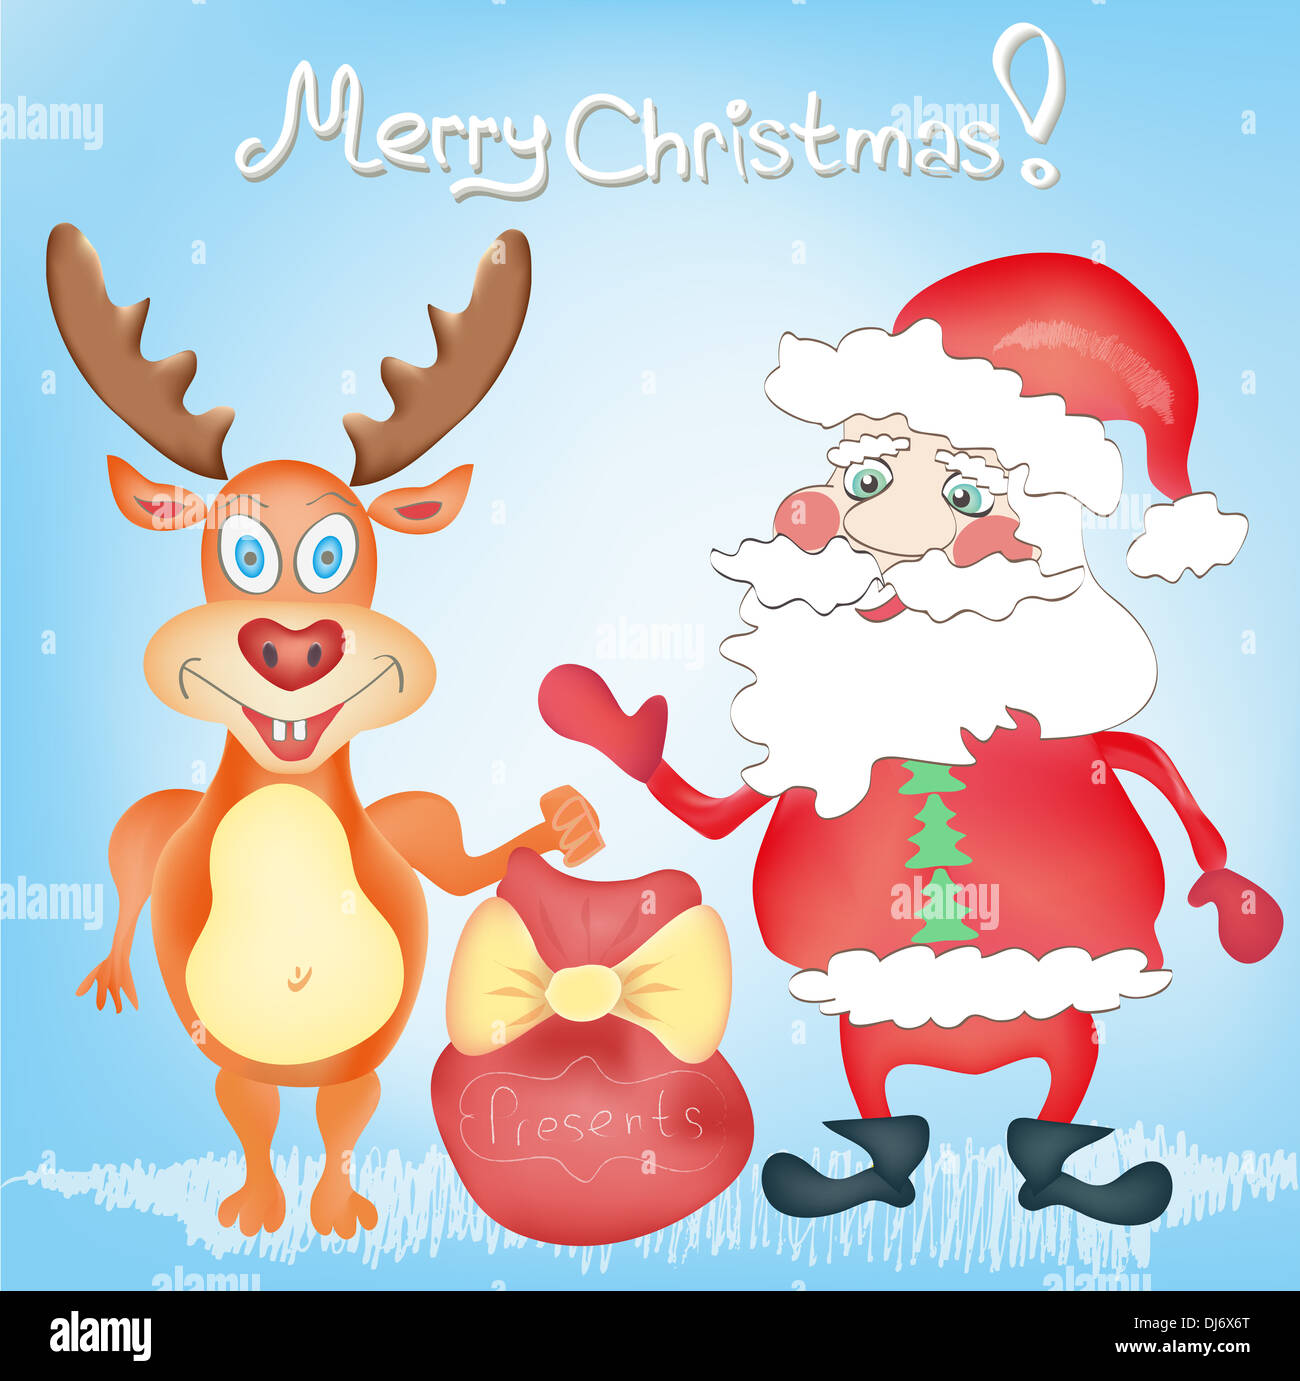 Merry Christmas Holiday Greeting Card With Deer And Santa Claus